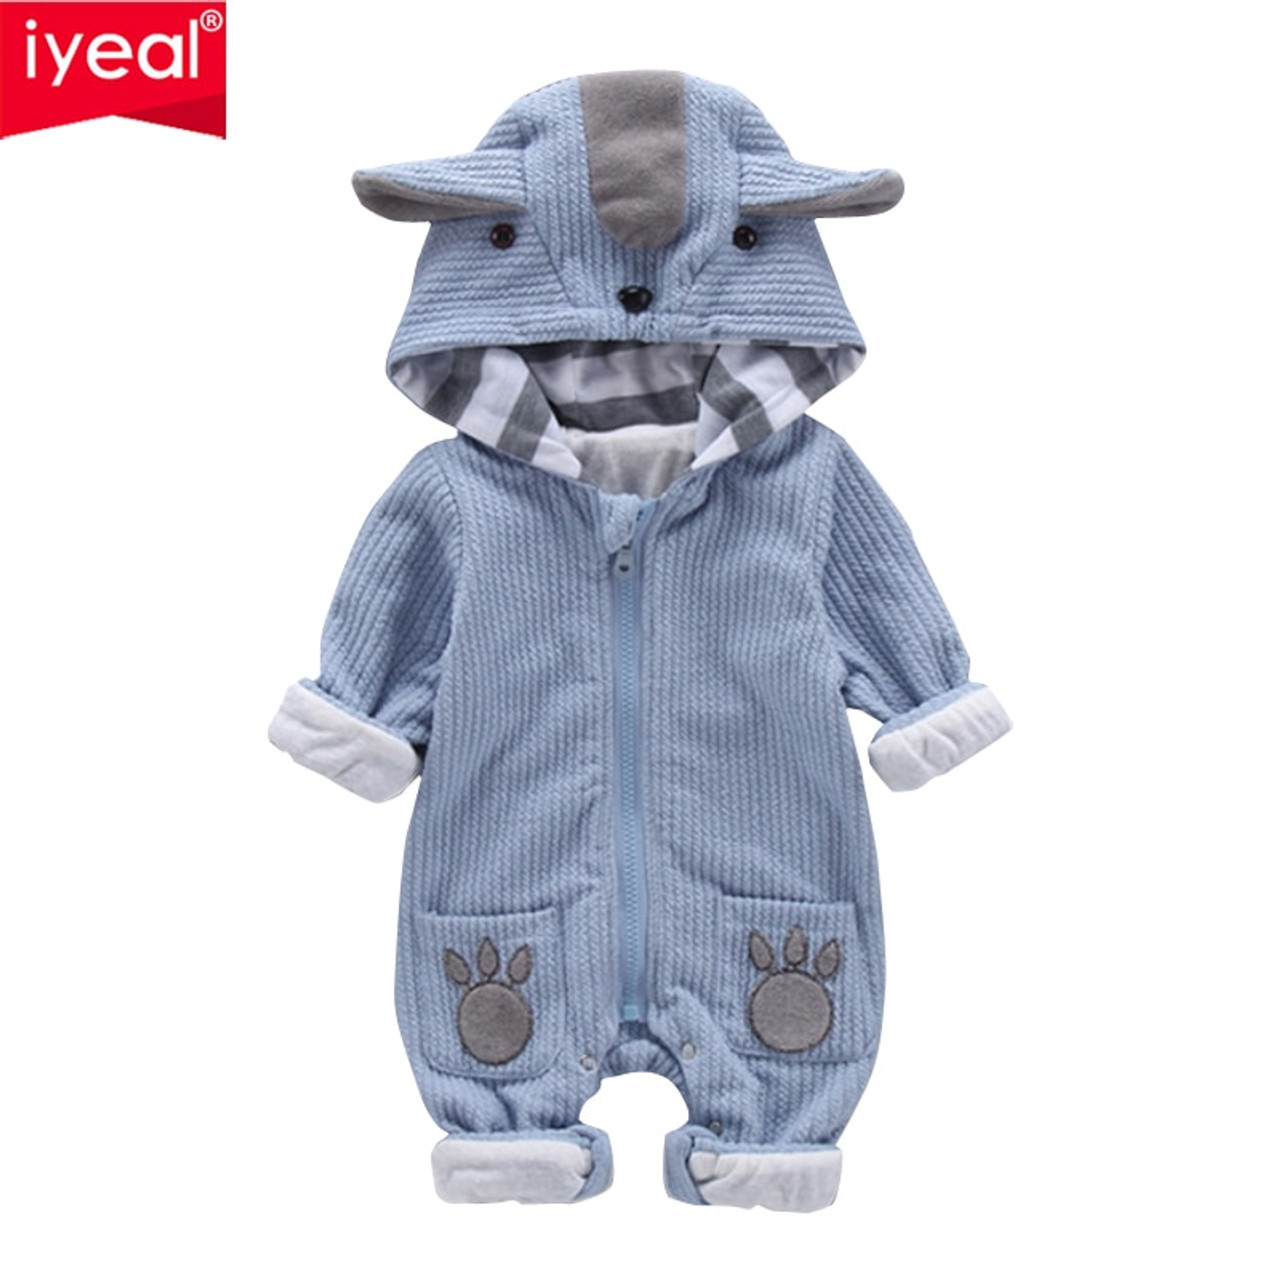 ee0ae4d769d2 IYEAL New Autumn Winter Baby Rompers Cute Hooded Cartoon Ear Infant ...